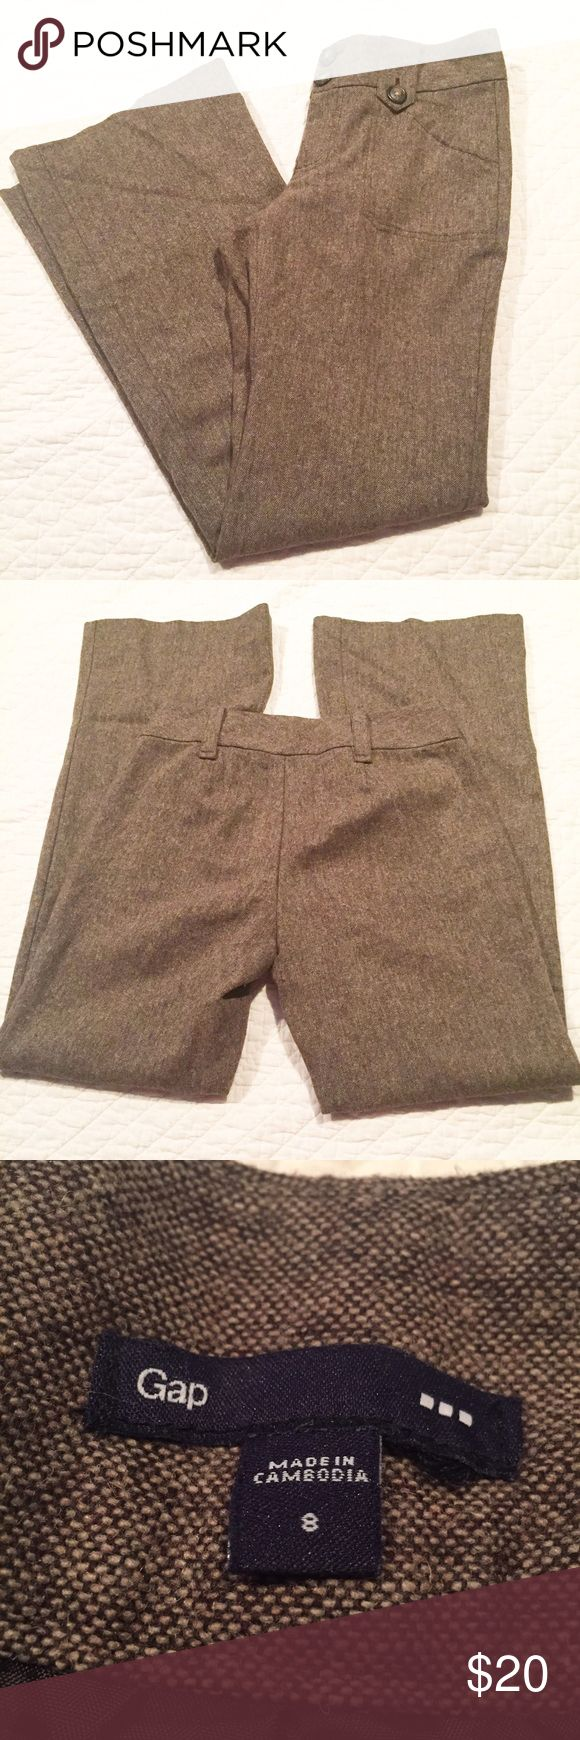 Gap Trousers Sz 8 Brown Gap trousers. Size 8. Brown color. Fully lined. 67% polyester 33% wool. VGUC GAP Pants Trousers